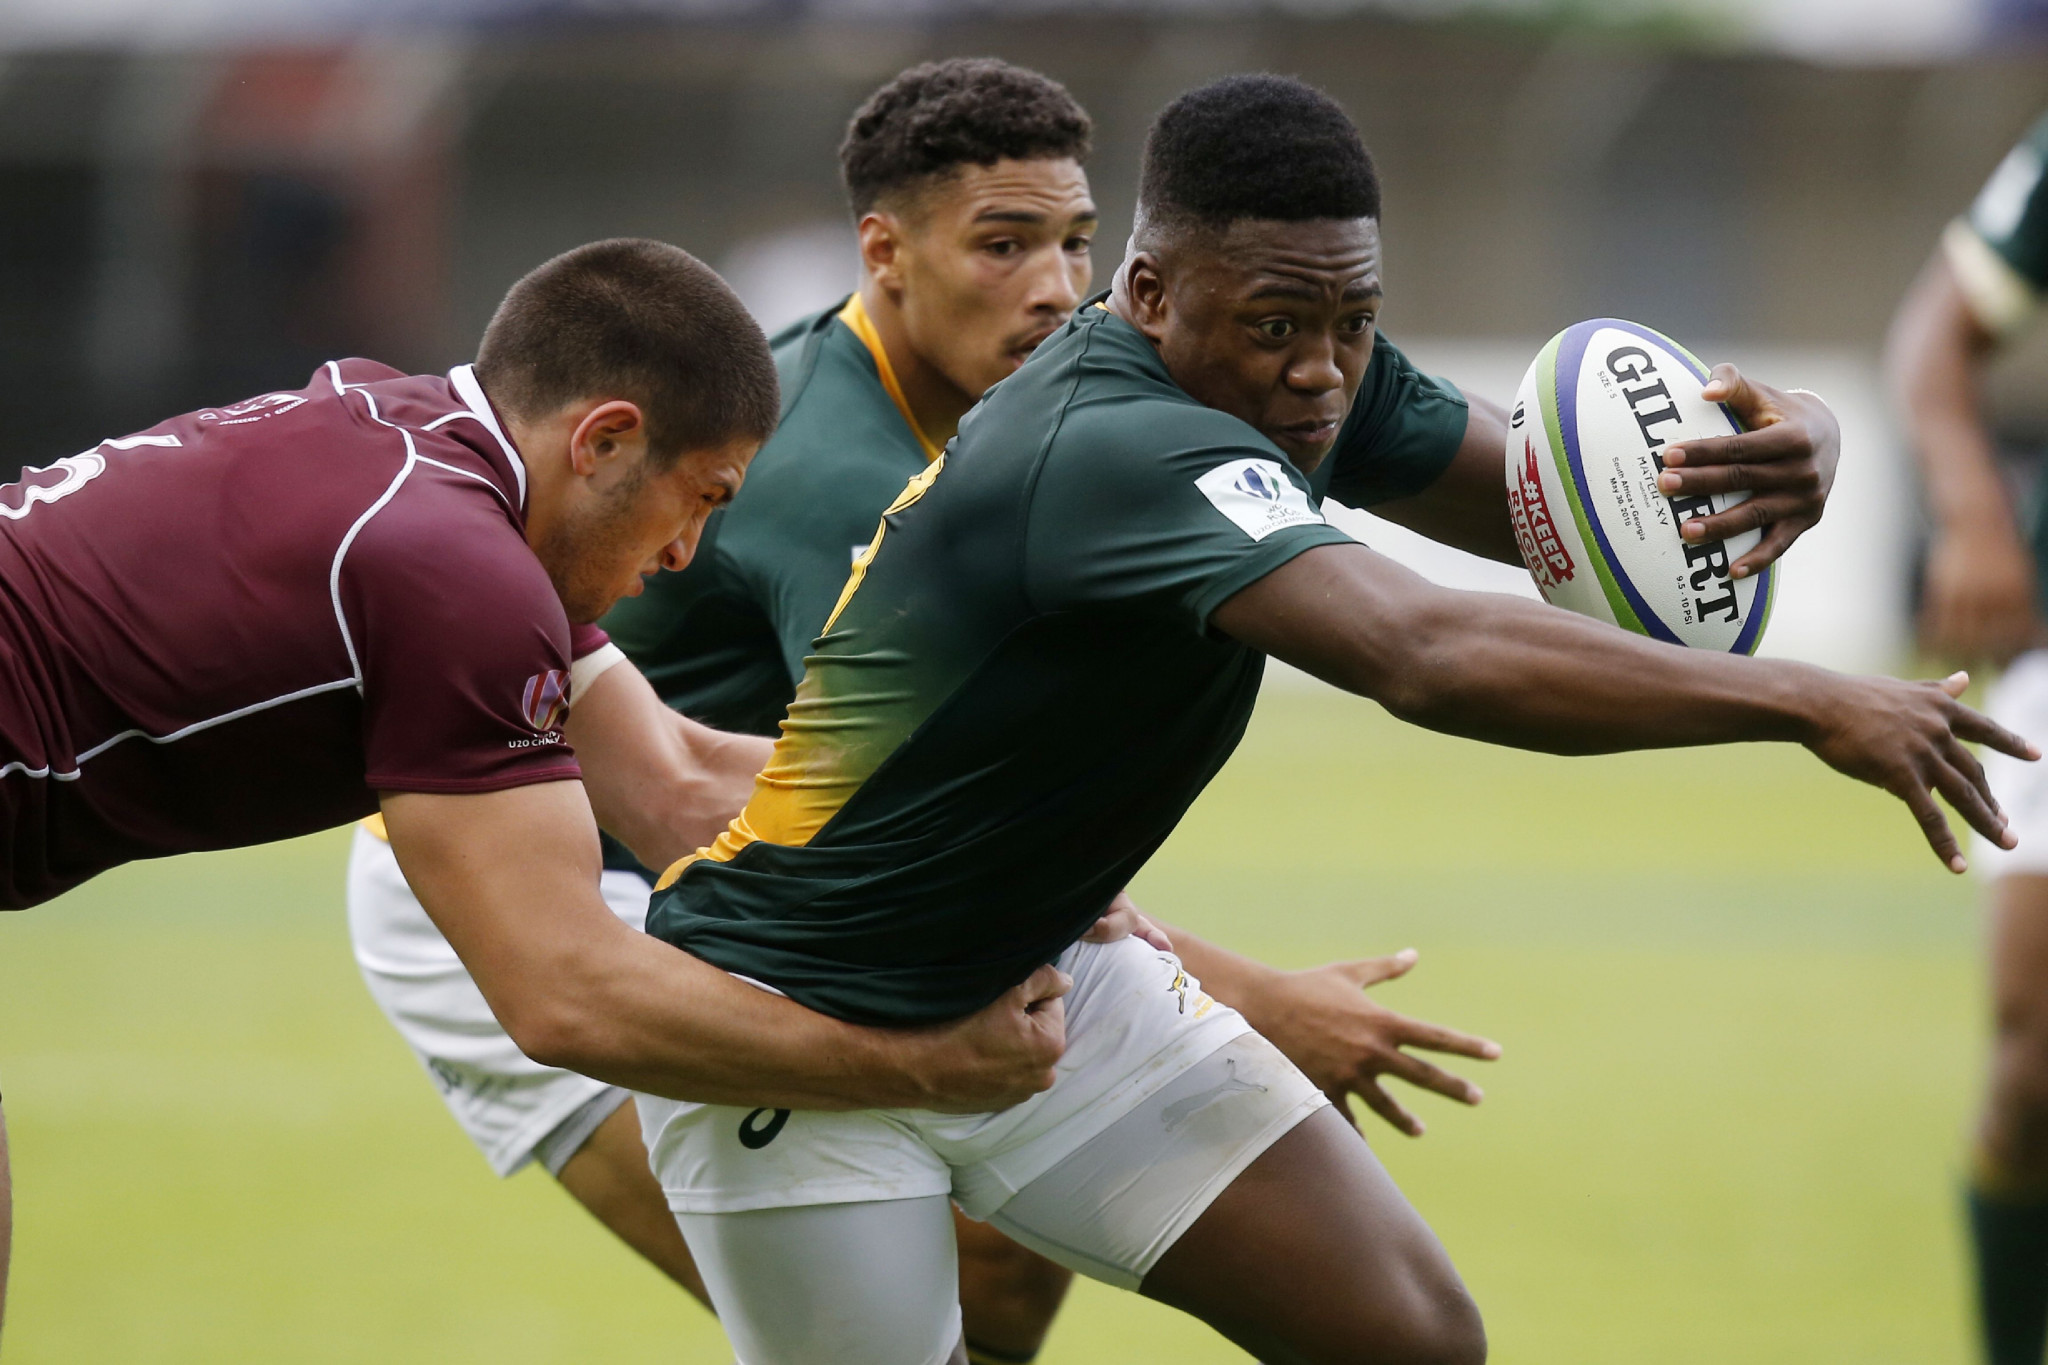 South Africa overcome tough Georgia challenge to open World Rugby Under-20 Championship